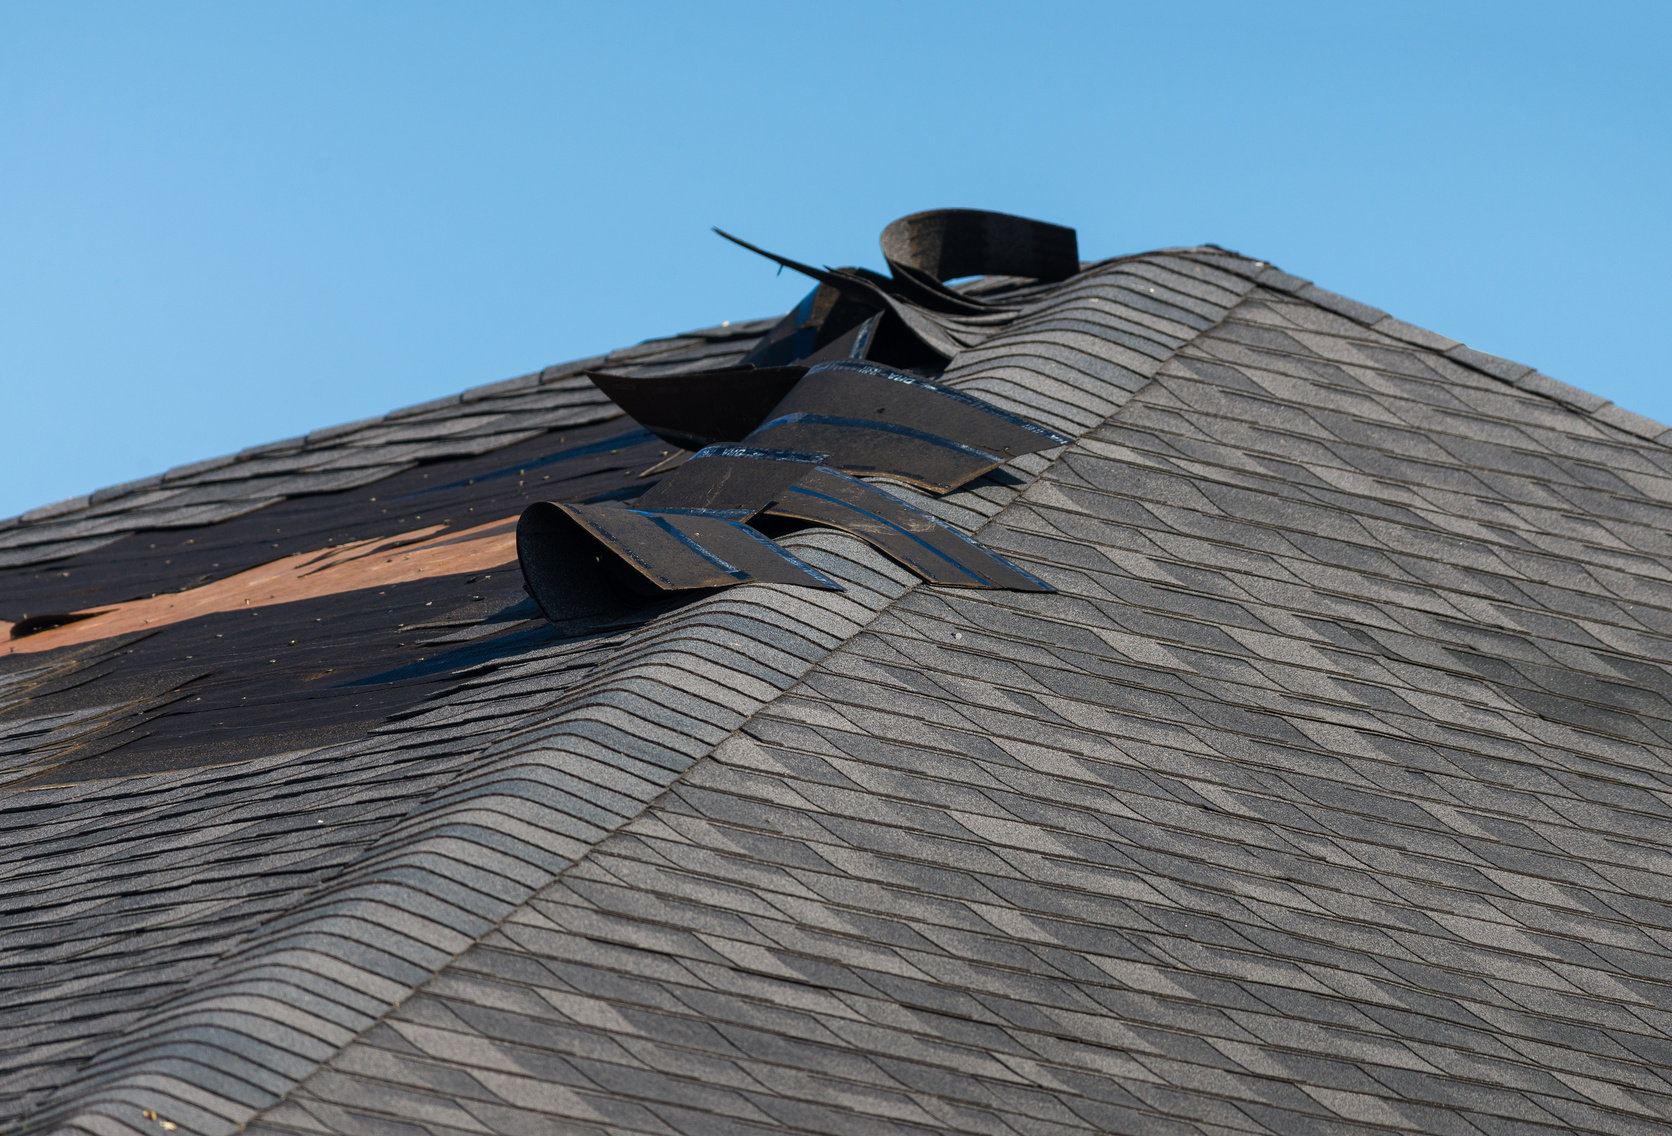 How To Spot And Fix Roof Damage